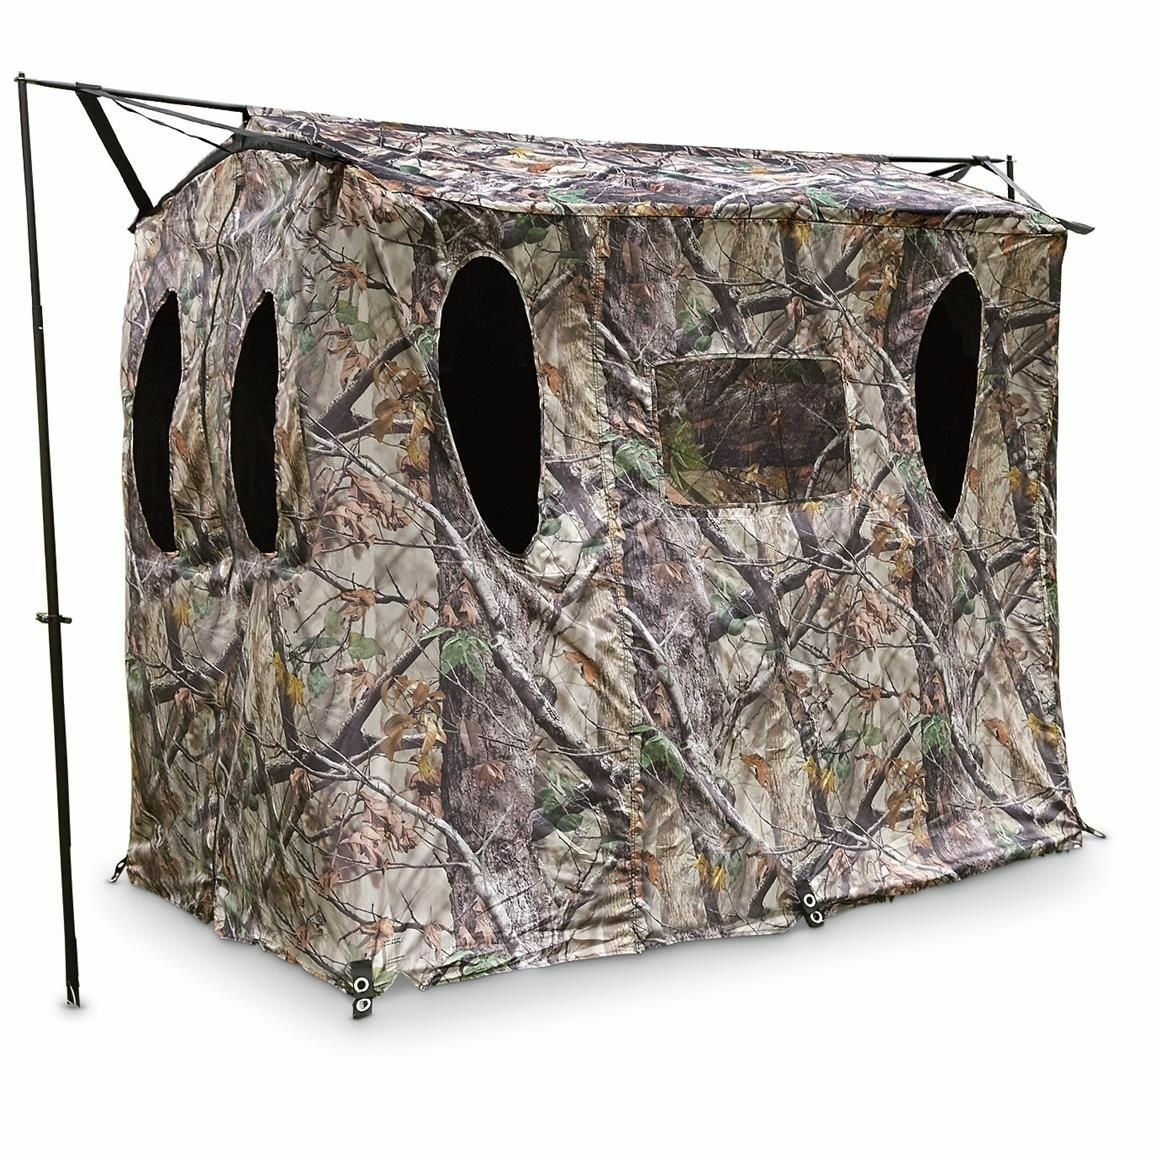 Extra Large Hunting Ground Blind Bow Deer Turkey Portable Wheelchair Friendly